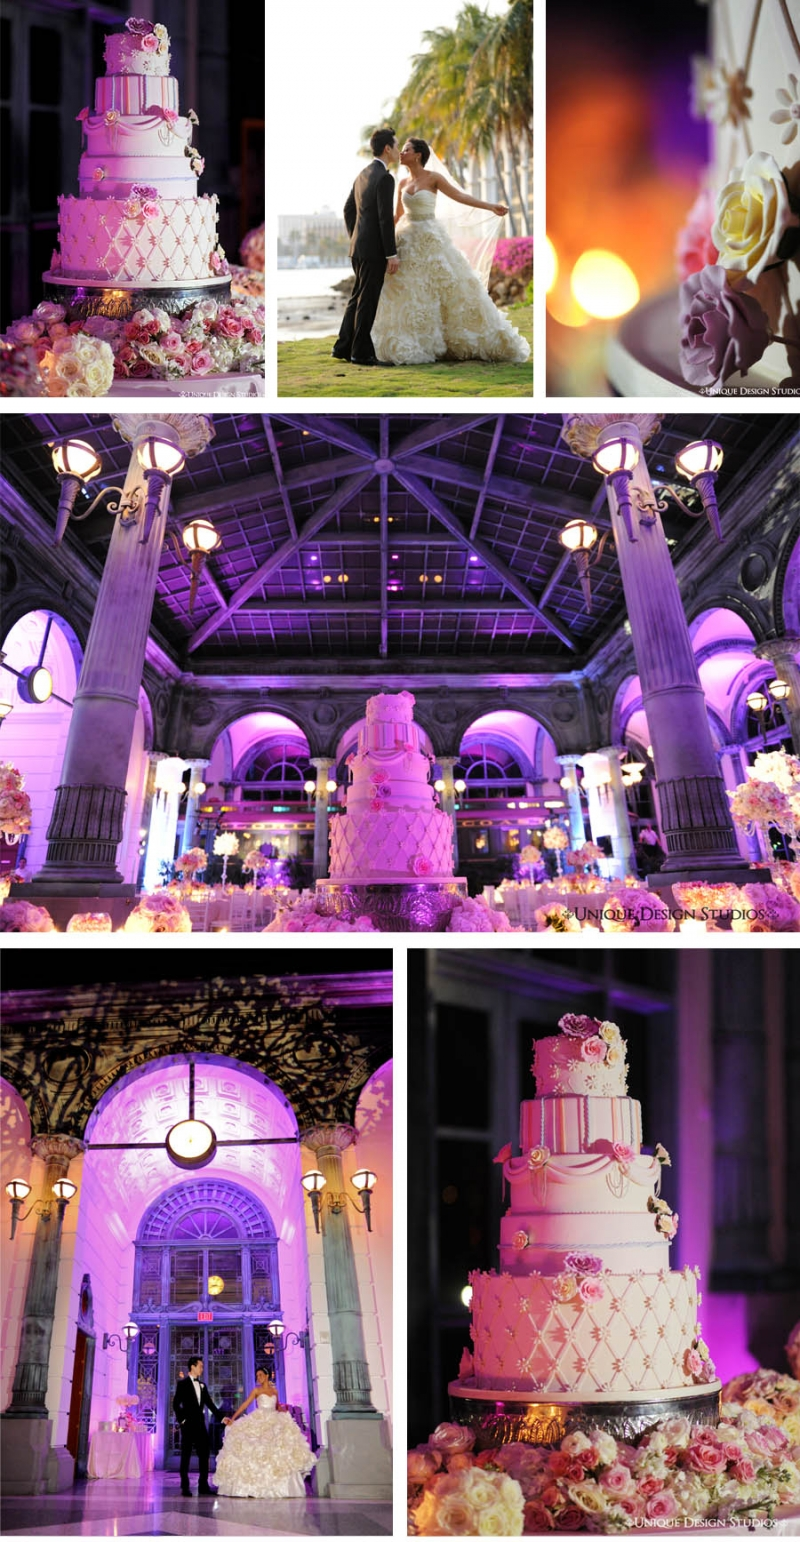 wedding-reception-ideas-10-04232014nz